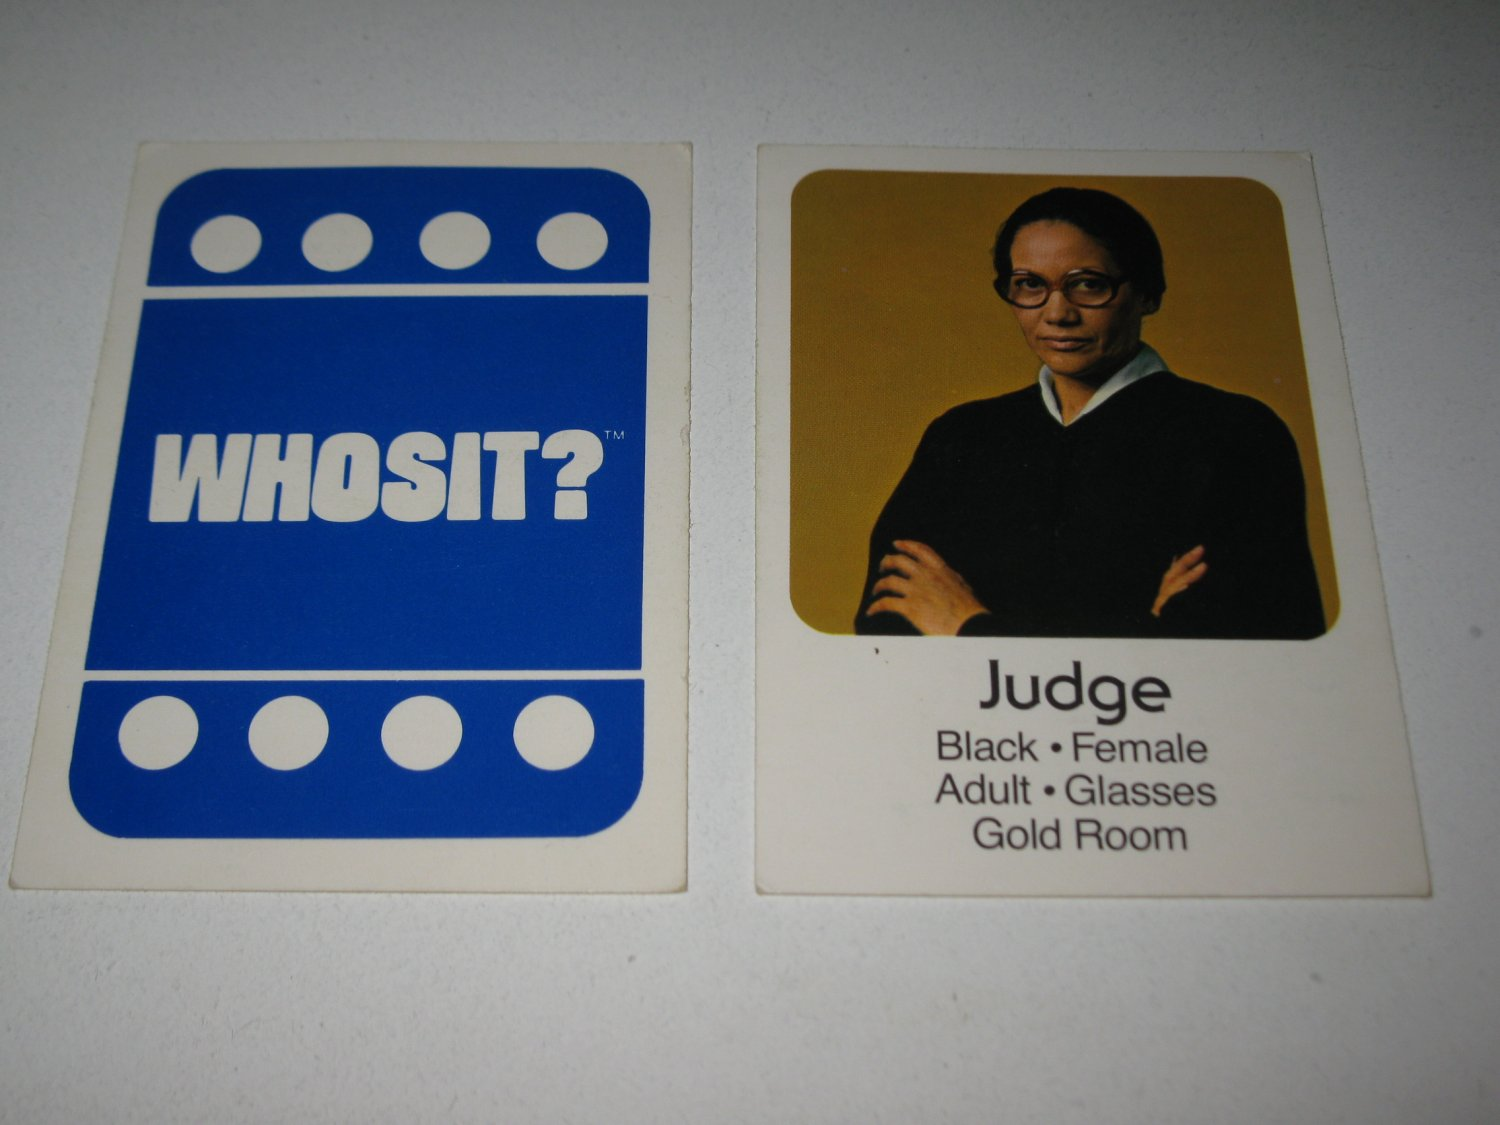 1976 Whosit? Board Game Piece: Judge blue Character Card